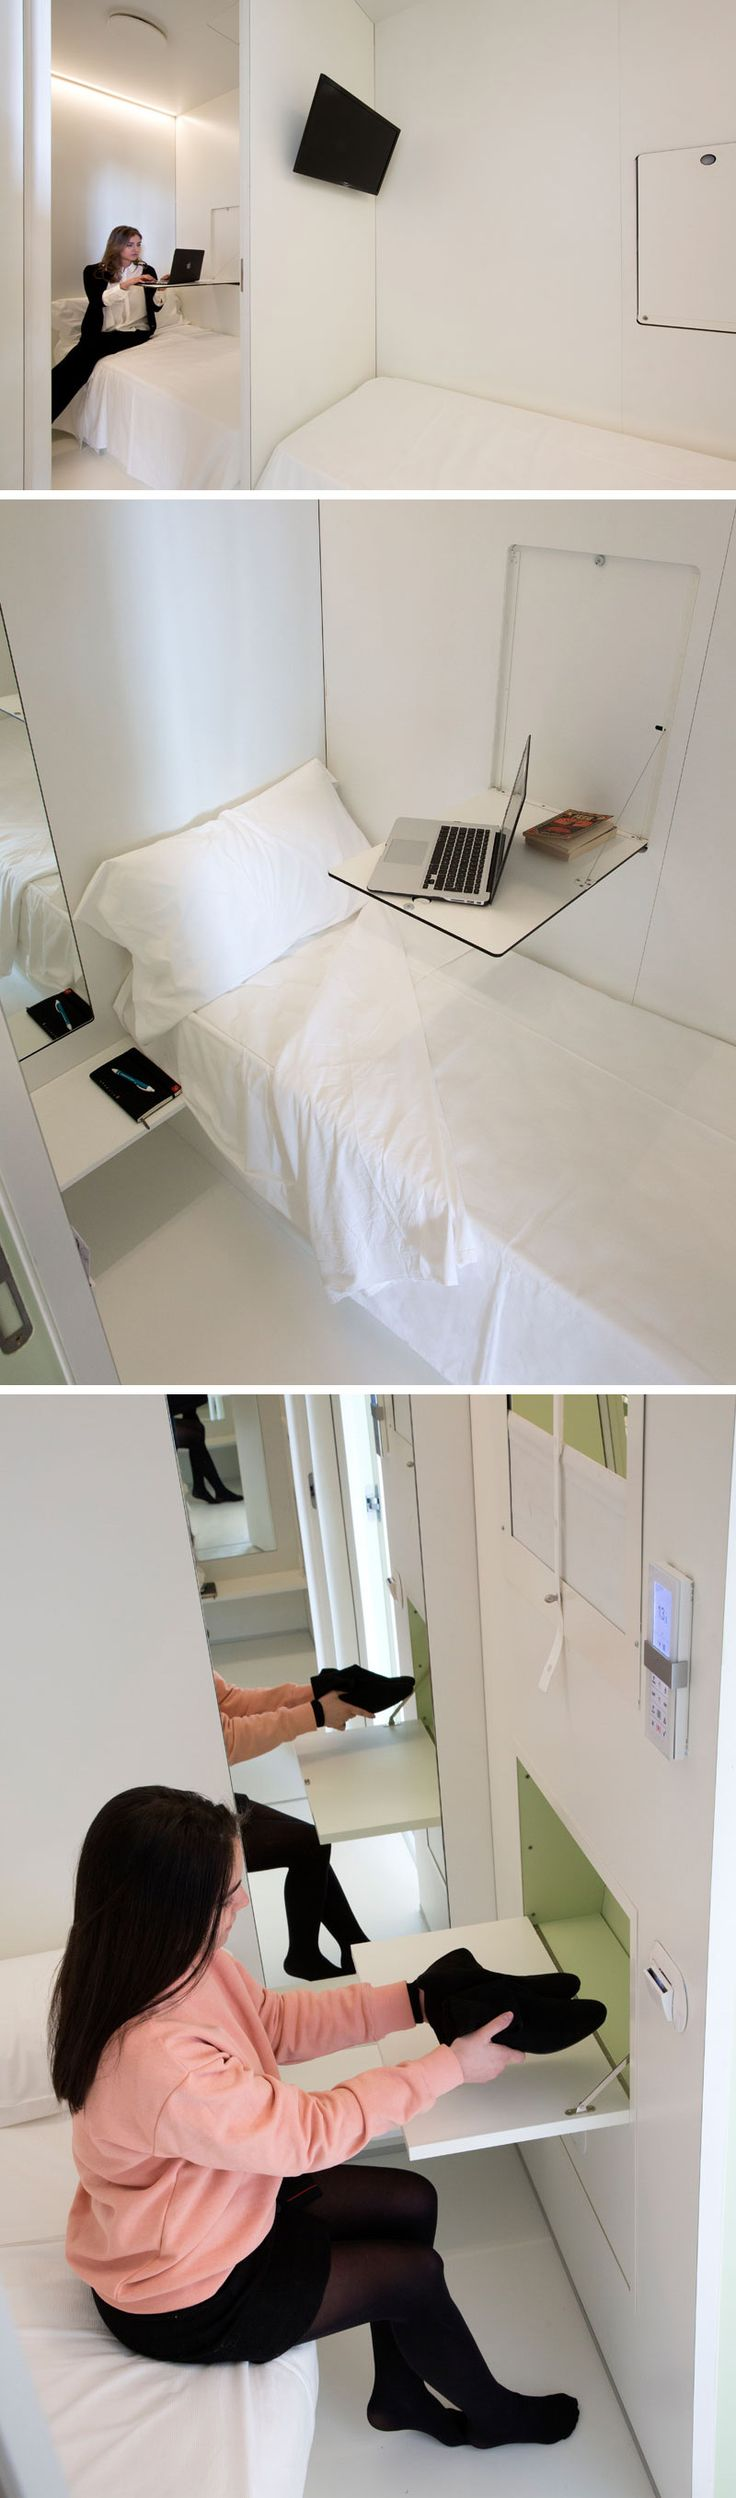 The capsule hotel rooms inside BenBo in Naples, Italy, are just 4 square meters and have soundproof walls, an automatic door, a window with blinds, a drop down table/desk, a television, a mirror, hangers, and a shoe storage compartment.